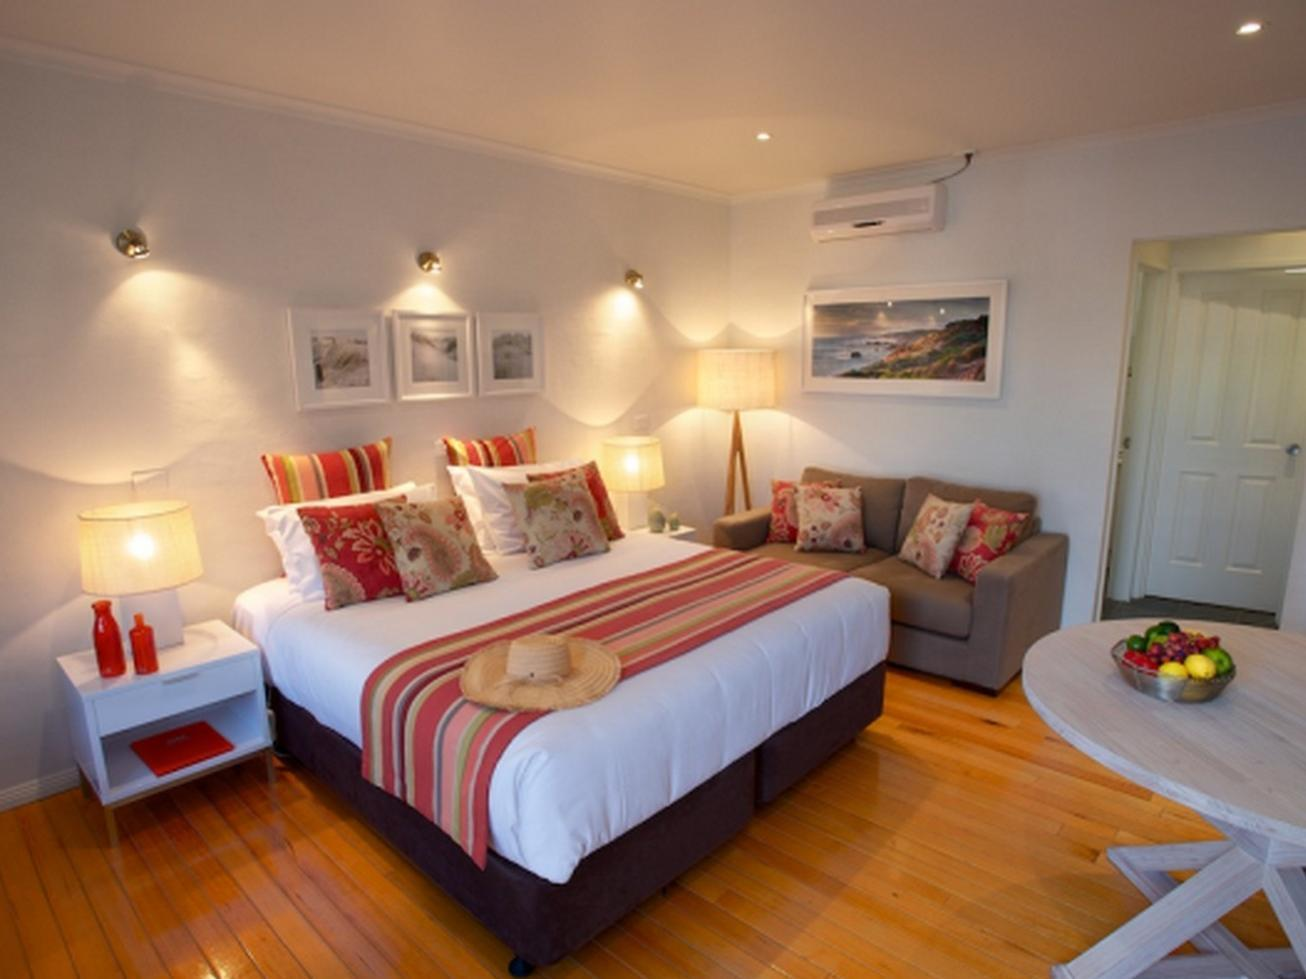 Sorrento Beach Motel - Hotell och Boende i Australien , Mornington Peninsula